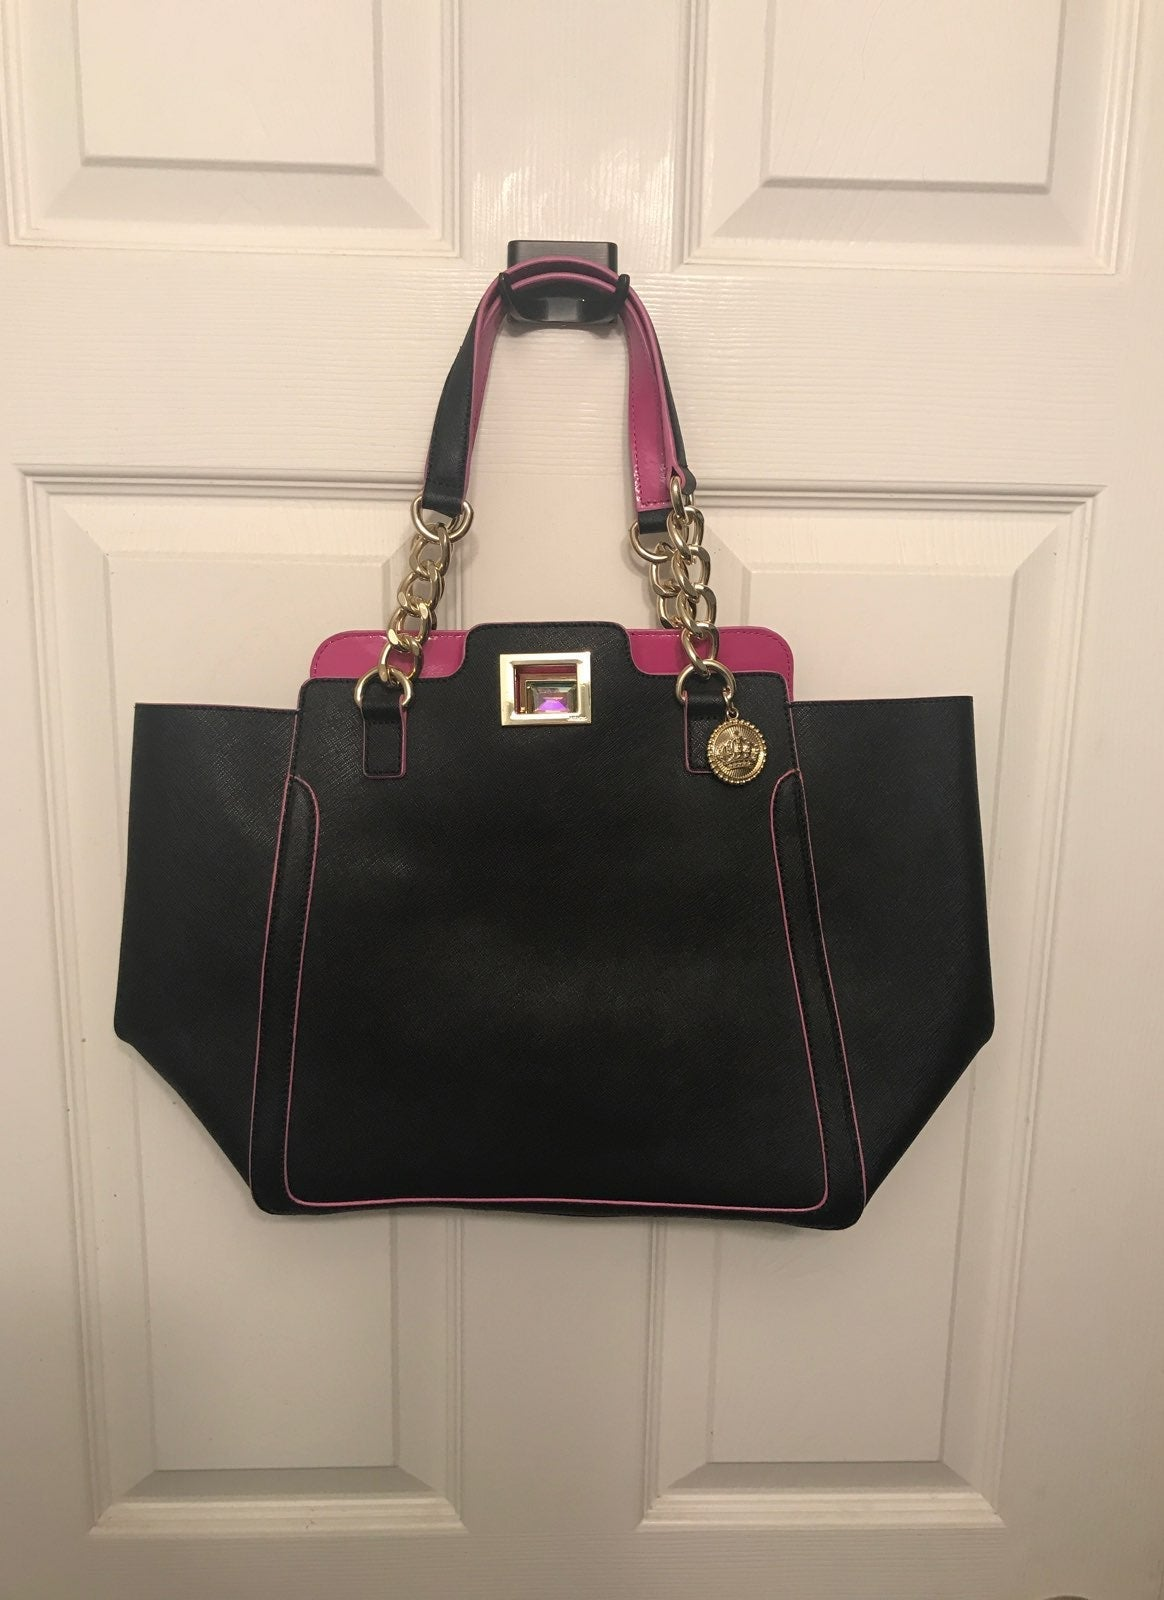 NWT Juicy Couture Purse